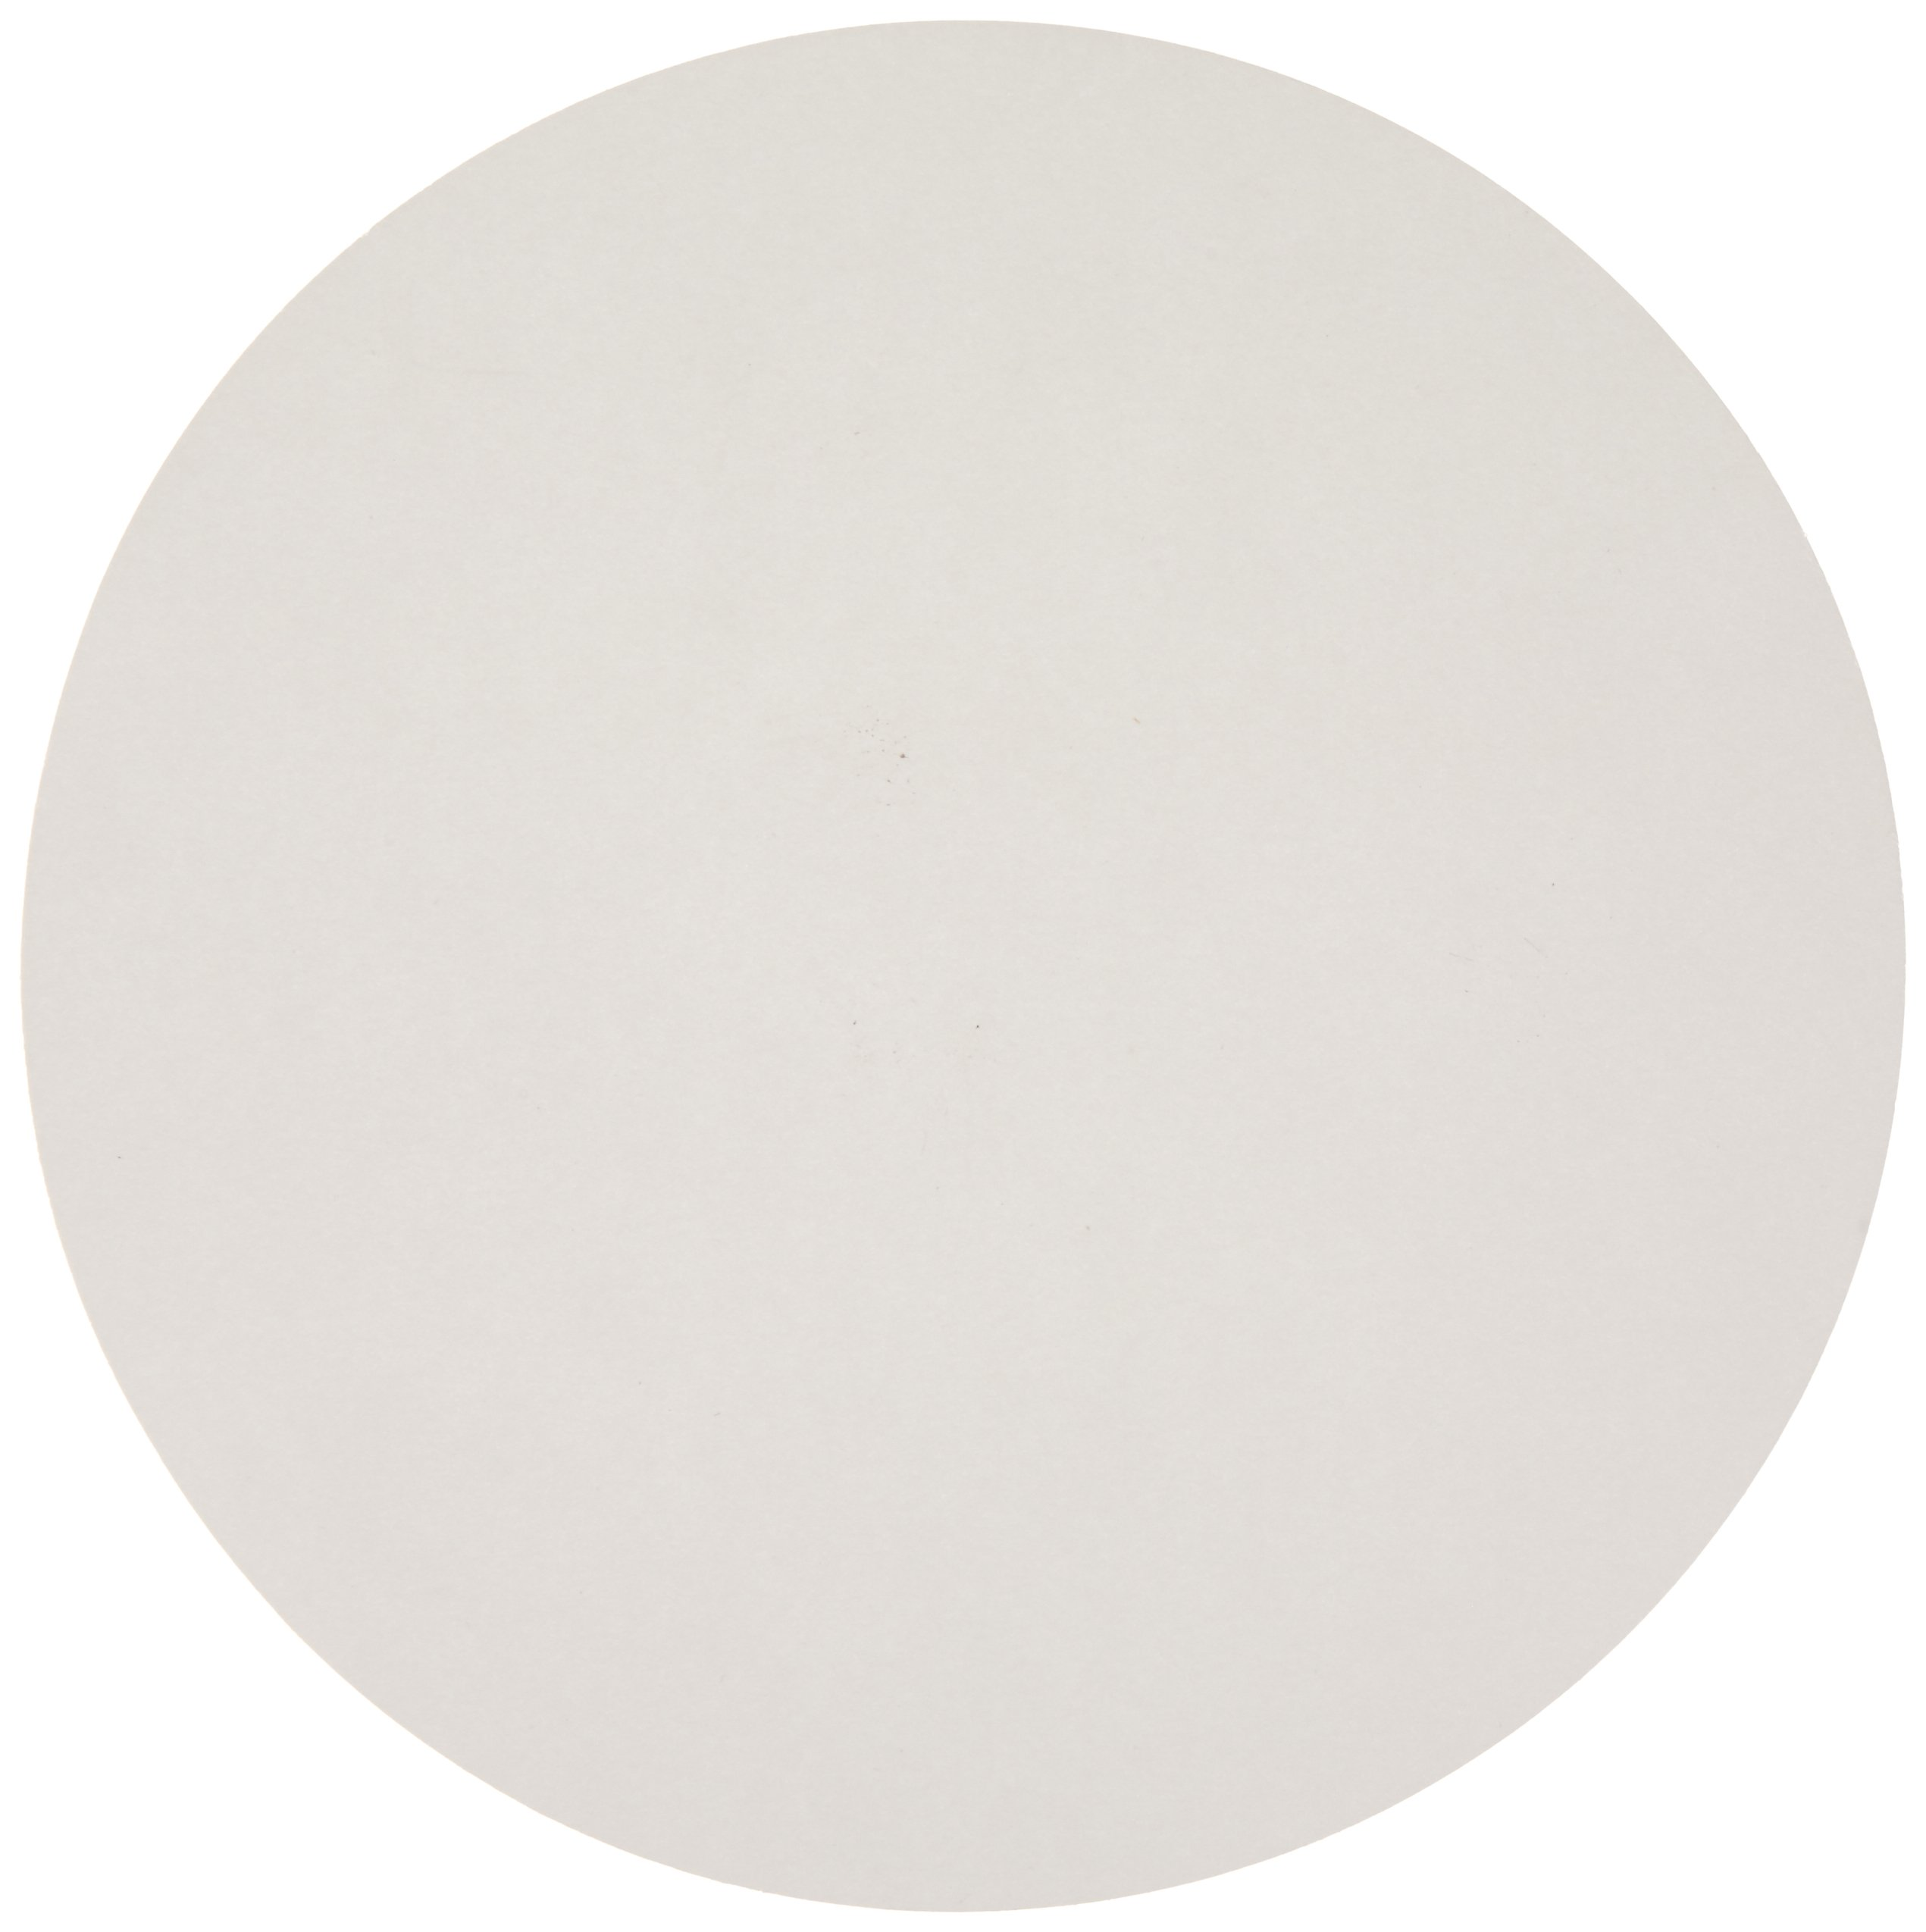 Whatman 4712B40PK 1001150 Grade 1 Qualitative Filter Paper, 150 mm Thick and Max Volume 571 ml/m (Pack of 100)